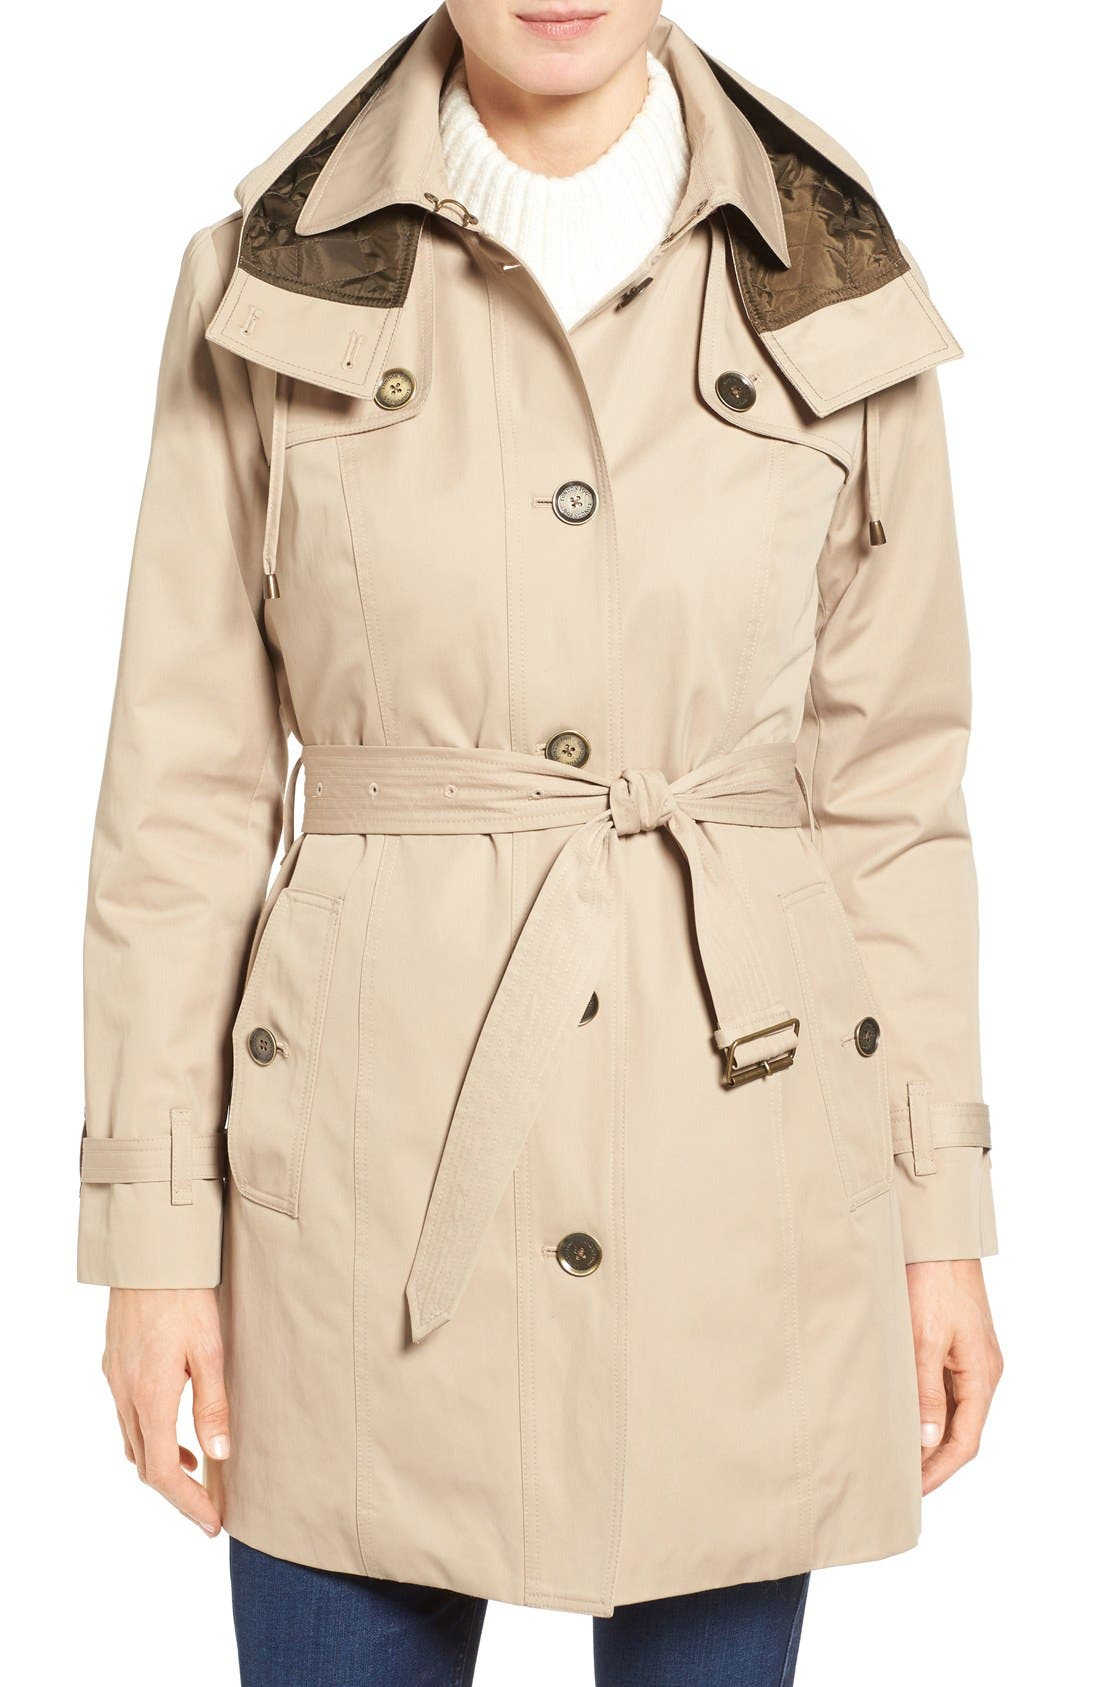 Alternate Image 1 Selected - London Fog Single Breasted Trench Coat (Regular & Petite)